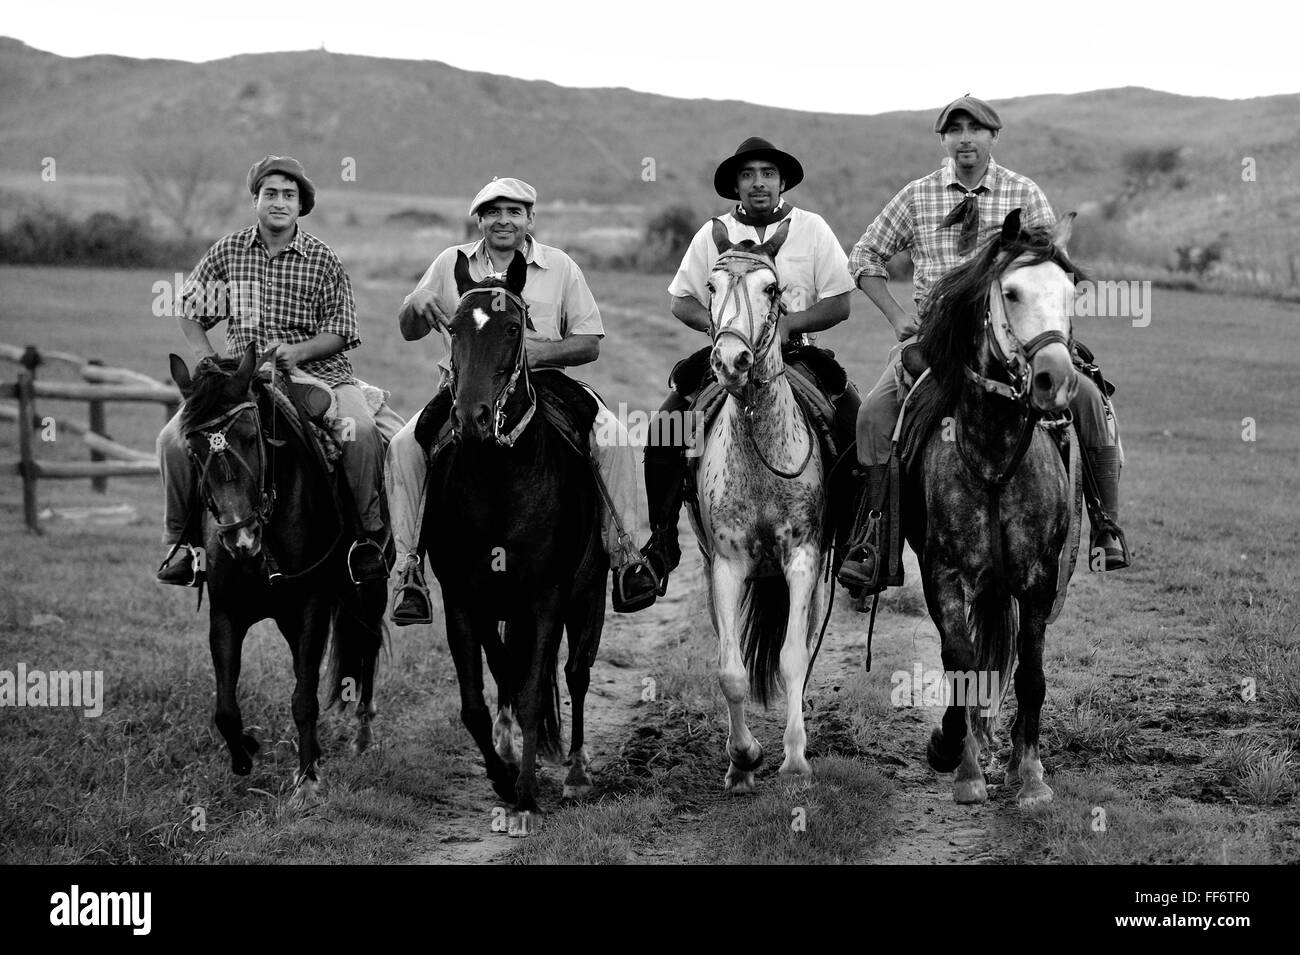 Gauchos ride through the Sierras Chicas in the Cordoba countryside, Argentina - Stock Image